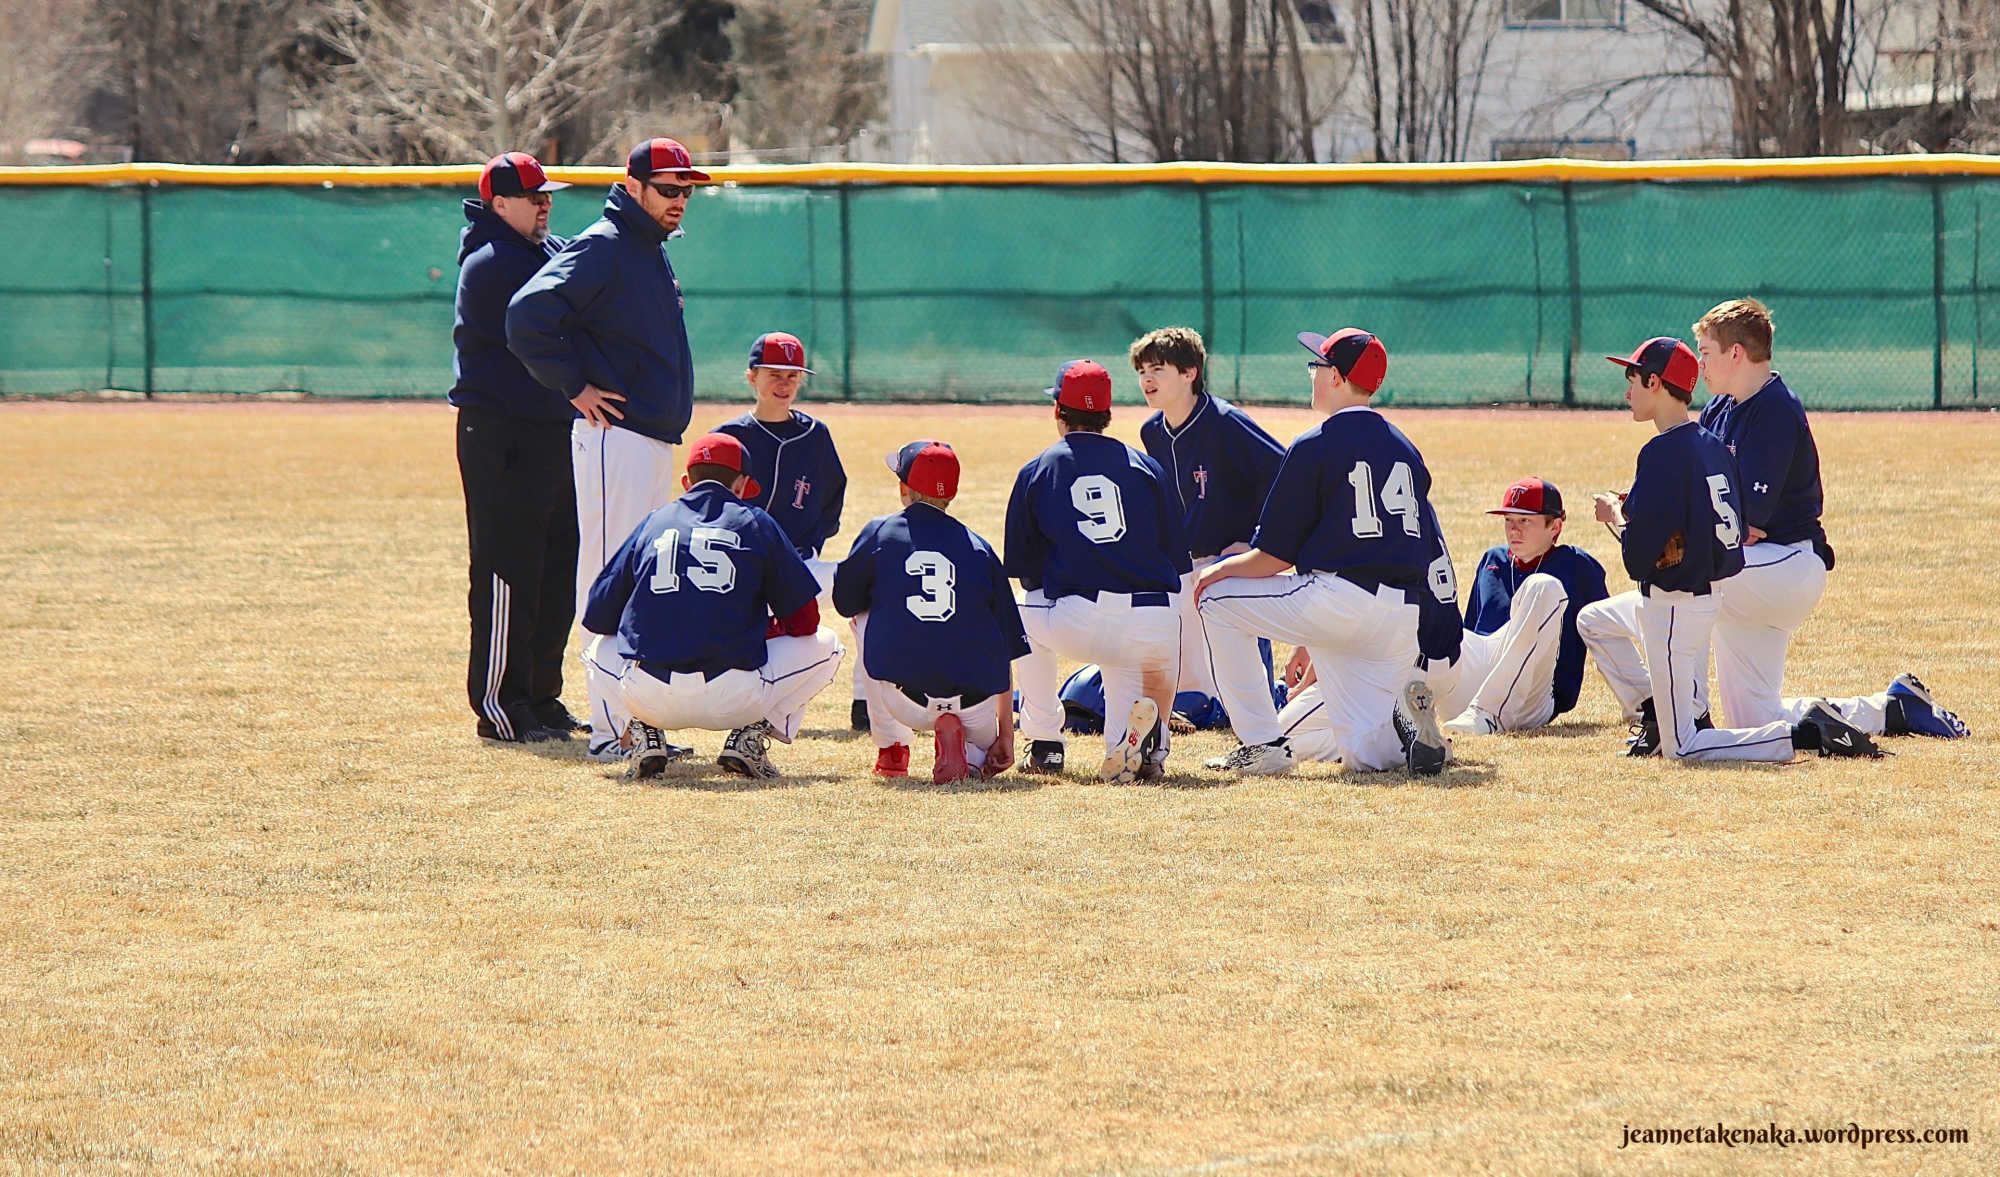 Perspective: Team gathered around coaches after baseball game